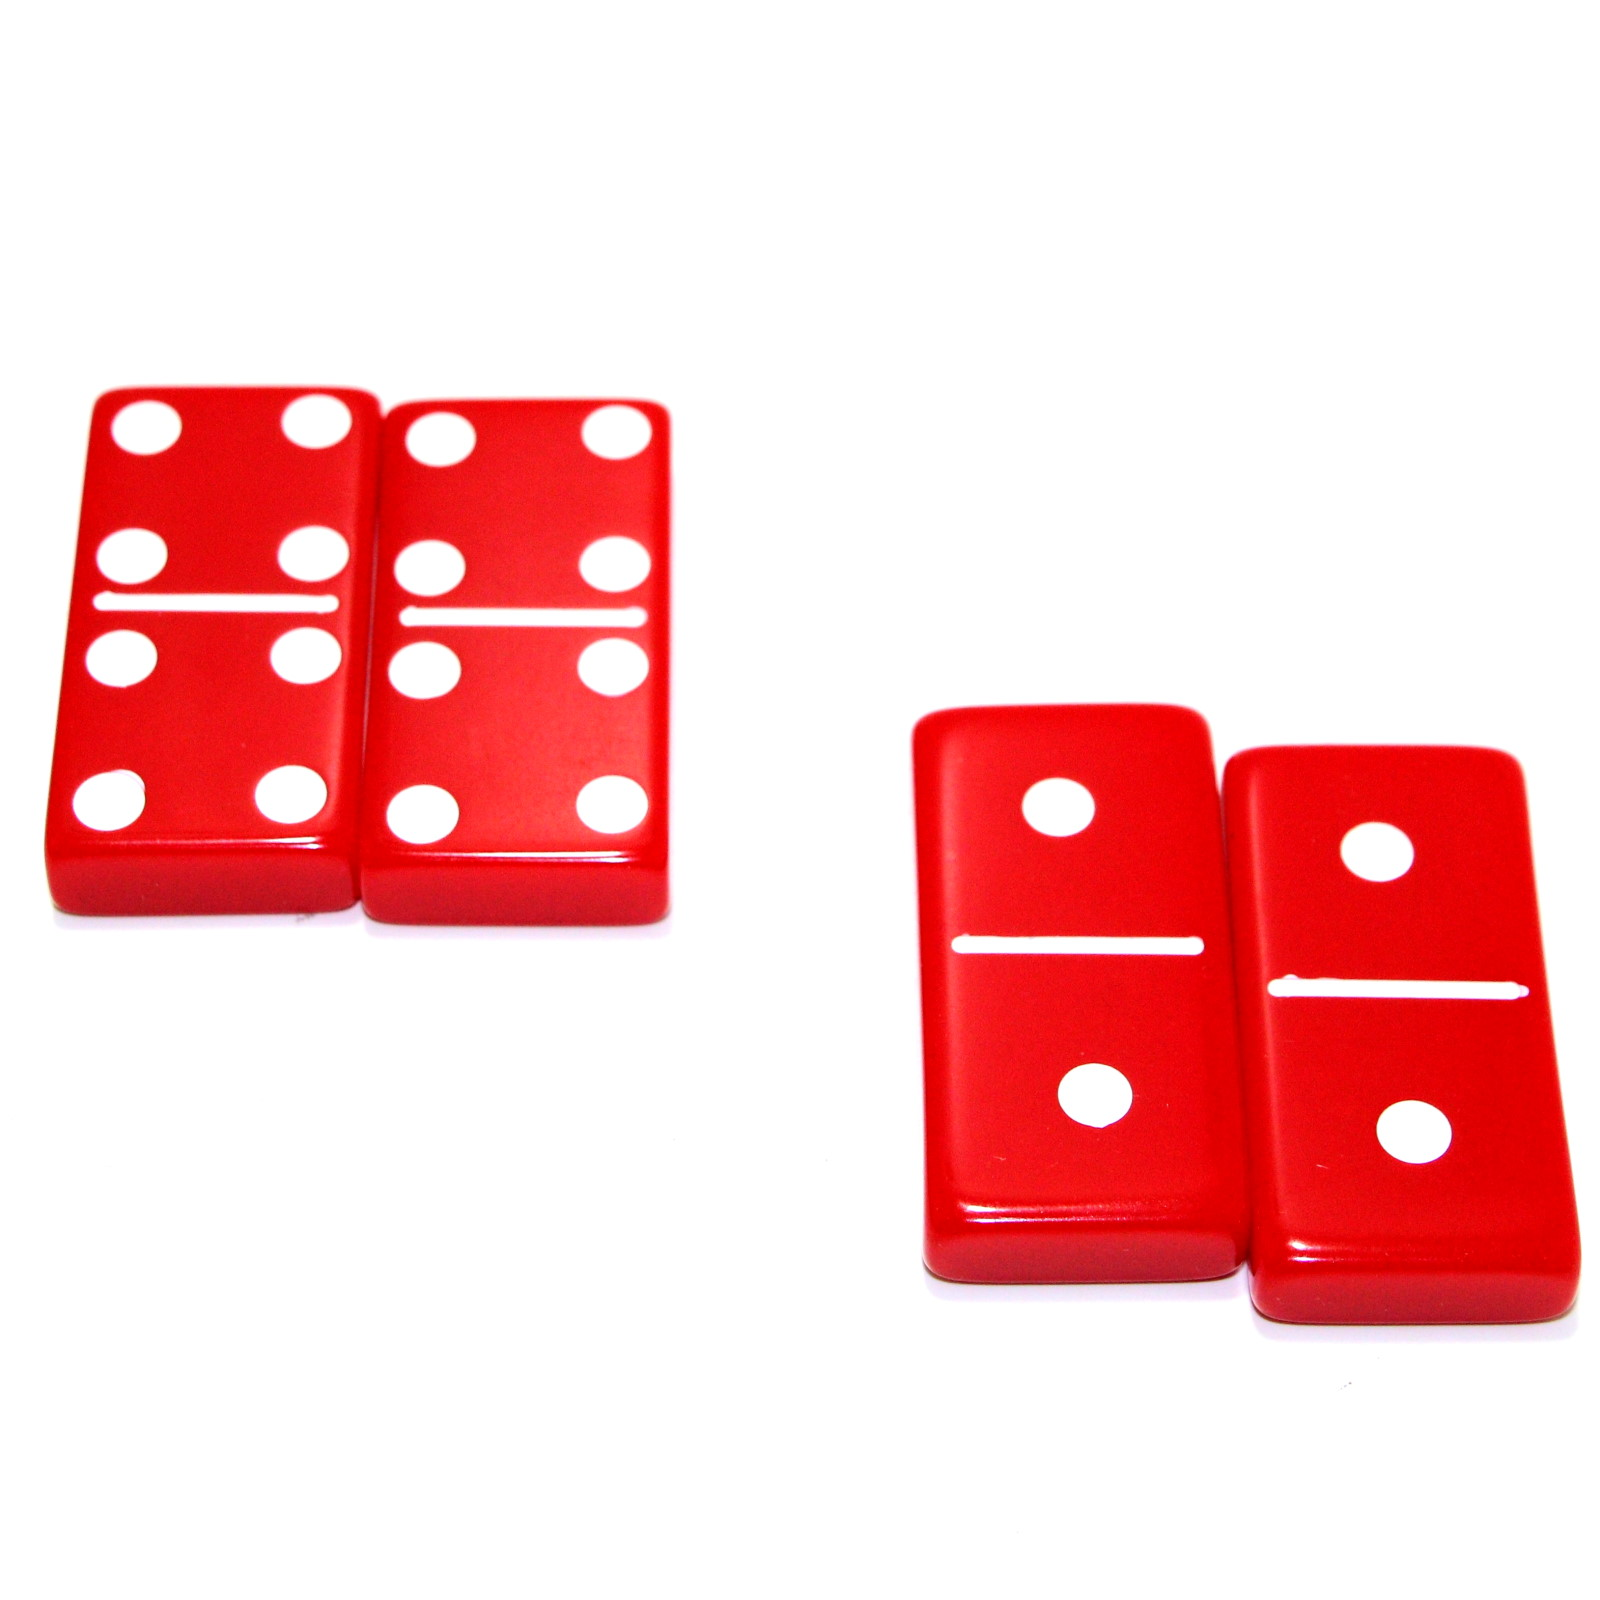 Crazy Dominoes by Marcelo Contento